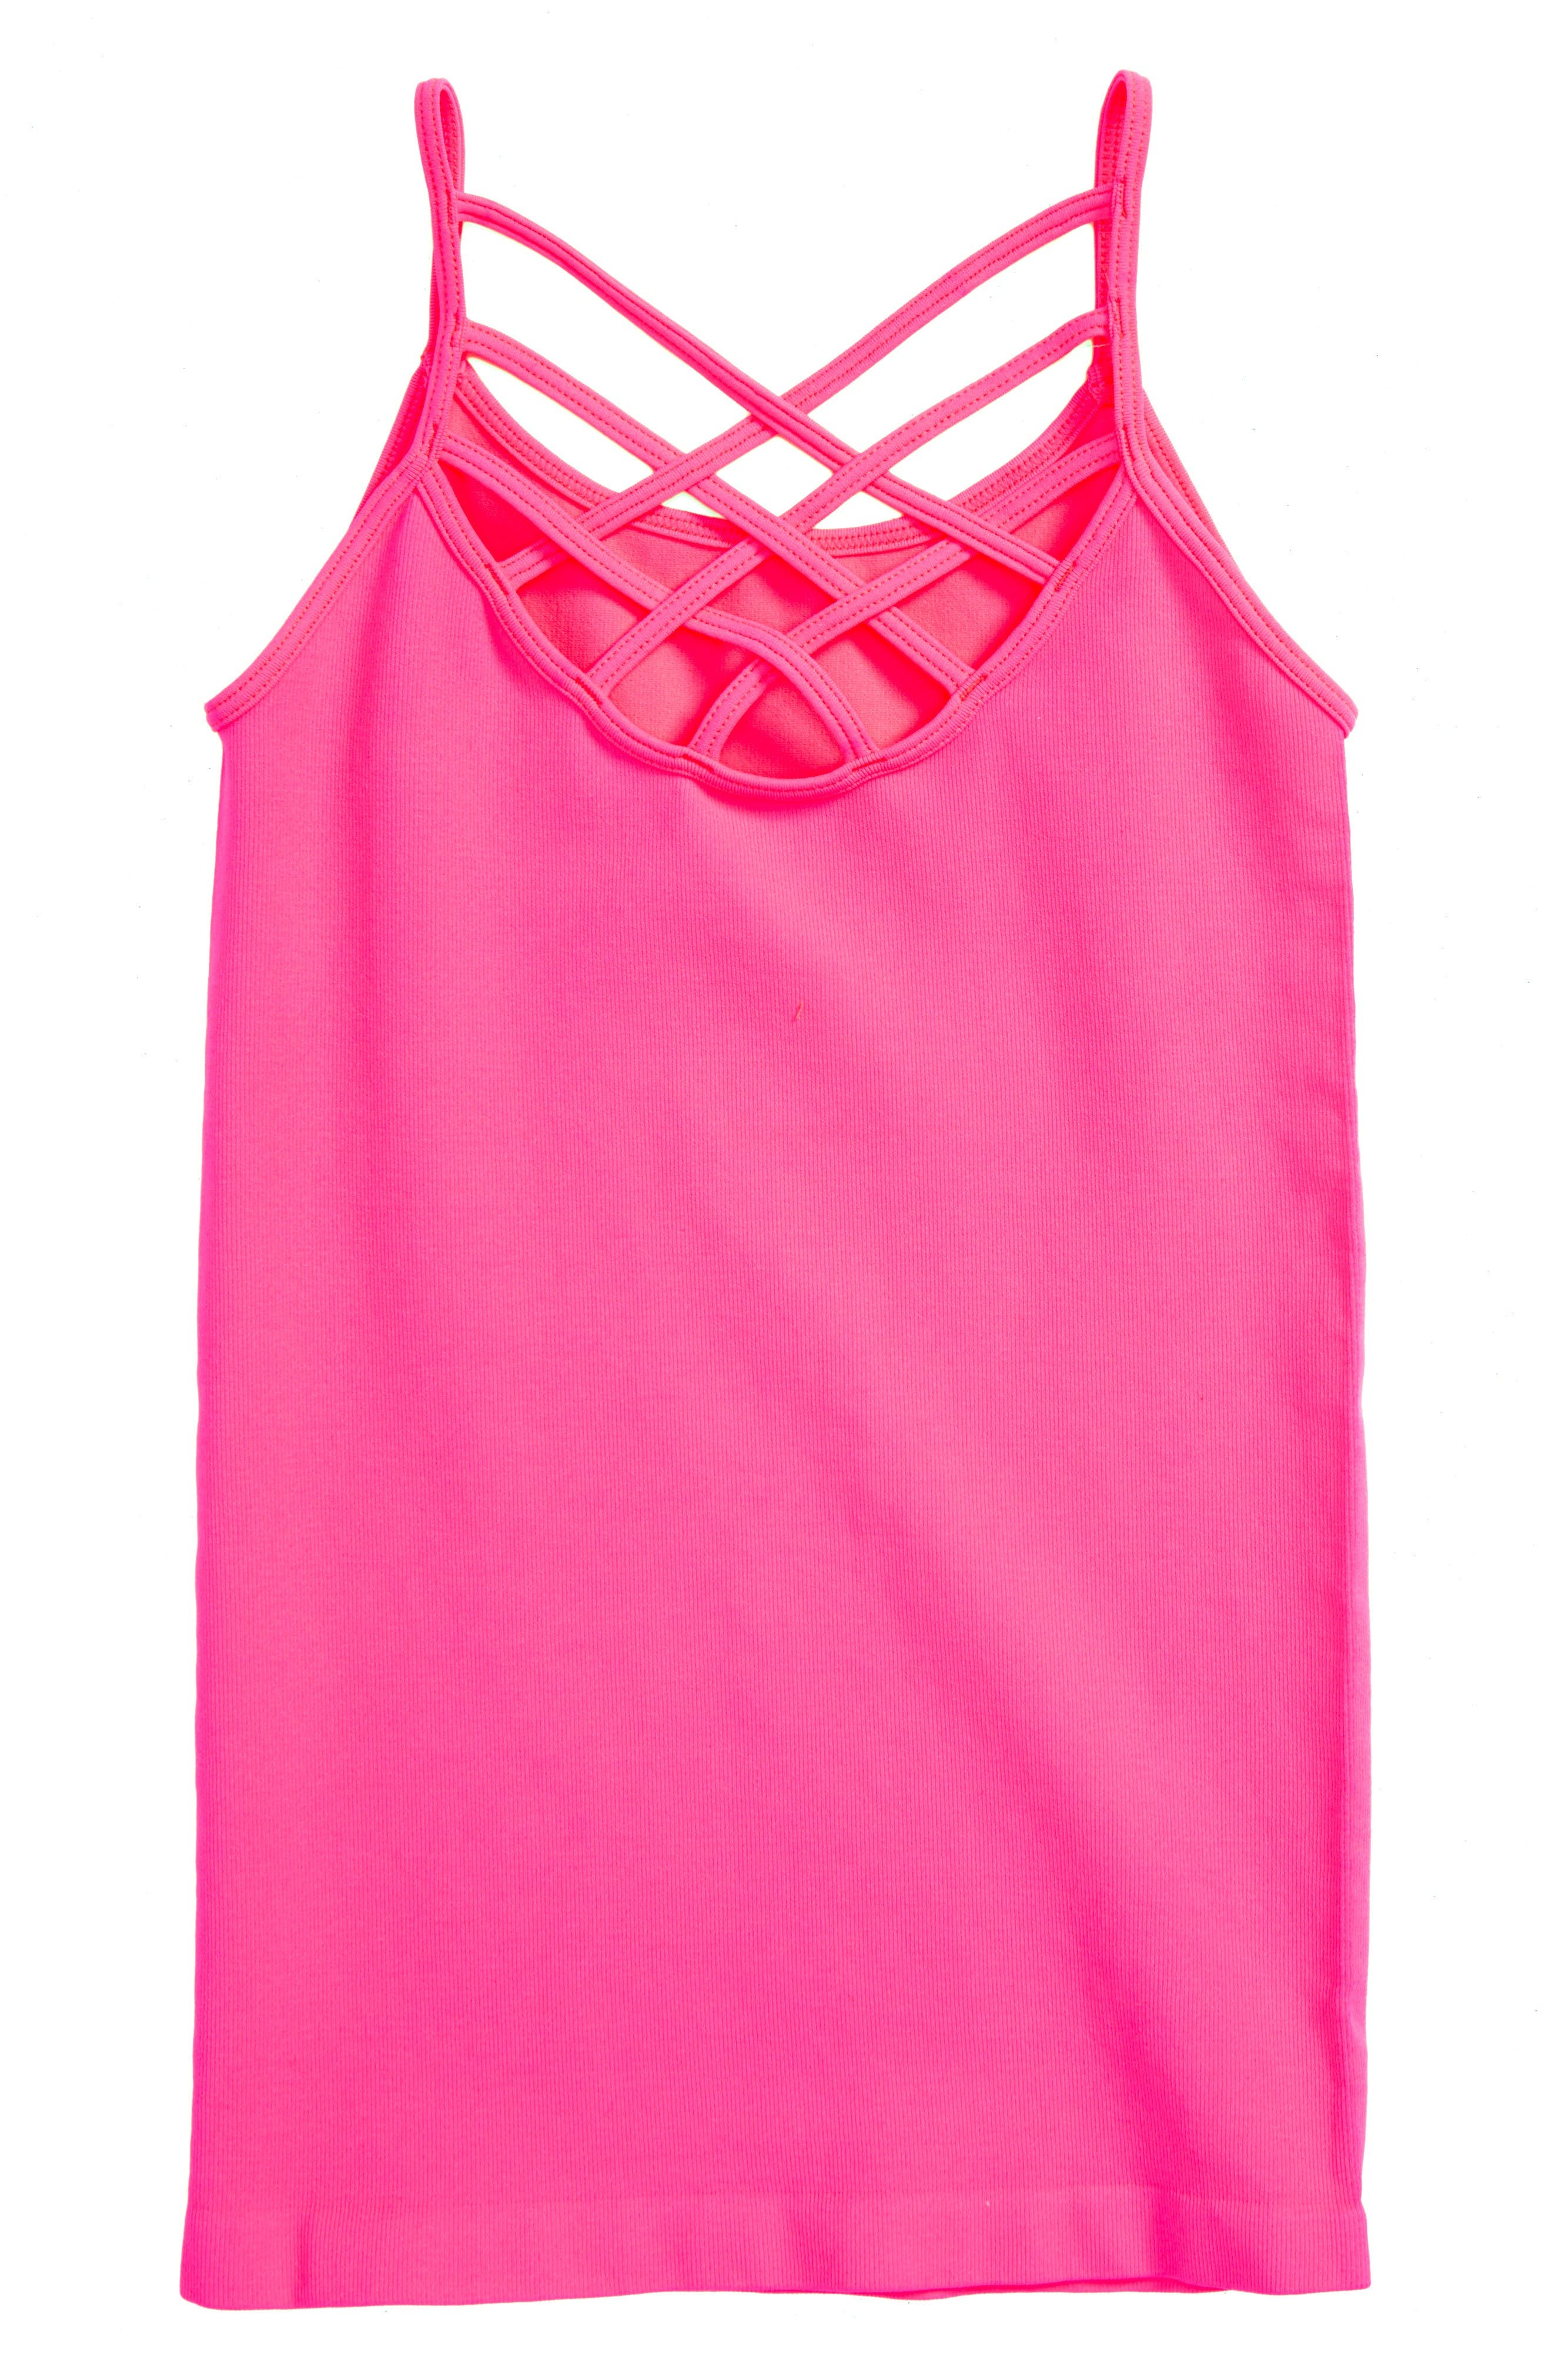 SUZETTE COLLECTION Strappy Tank